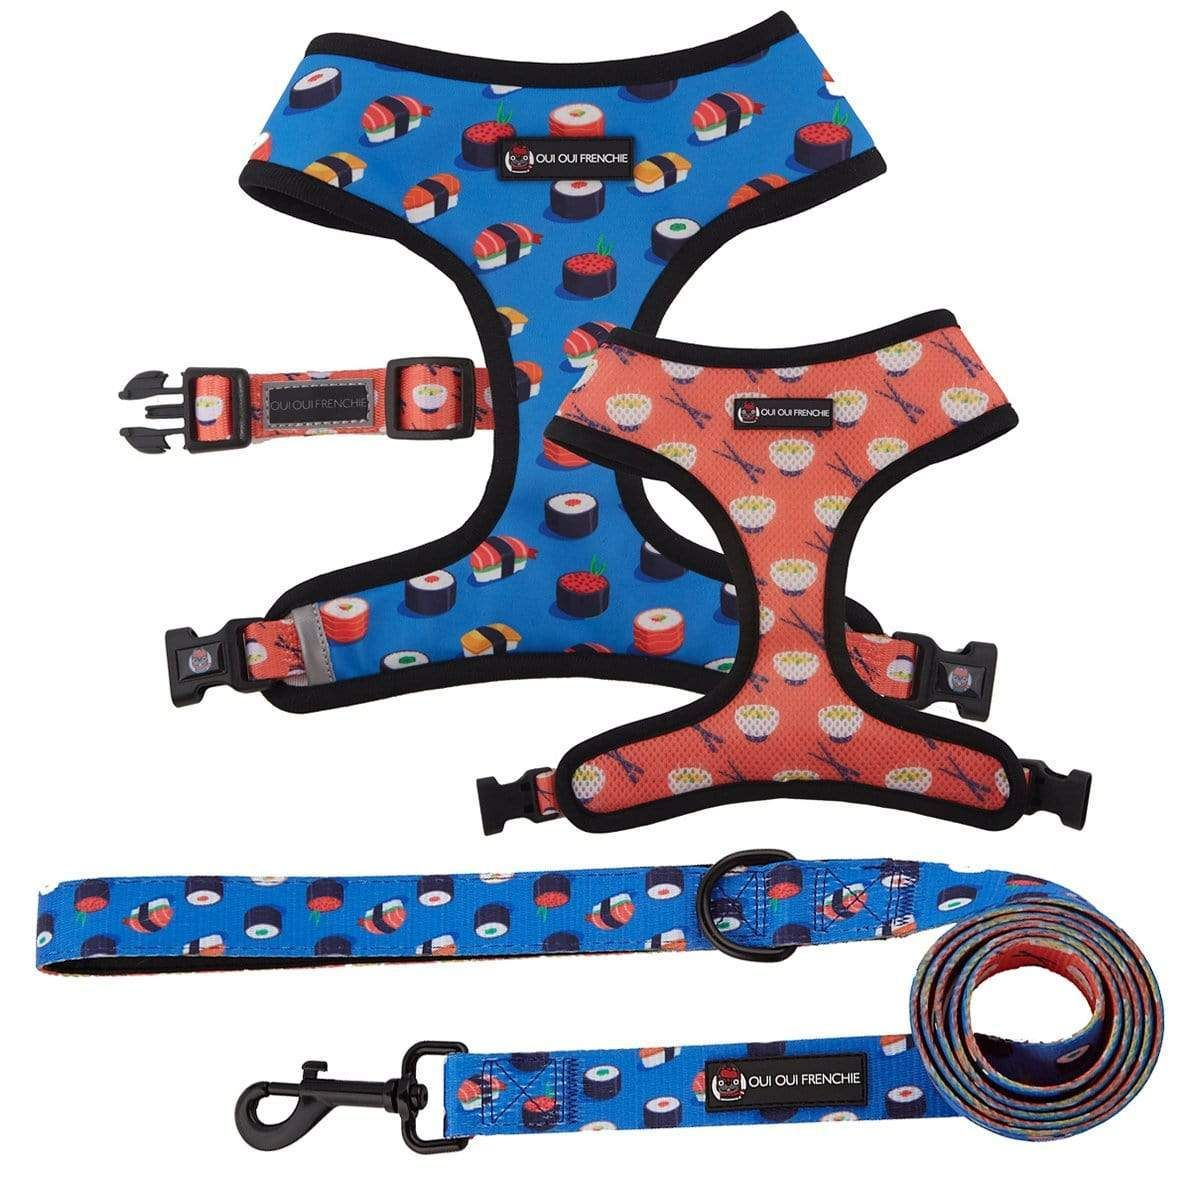 ⭐️⭐️⭐️⭐️⭐️ 5 star review: Great Harness Ordered the sushi reversible harness and leash combo. It fits our boy Harvey perfectly. Love it!! Will be buying more.